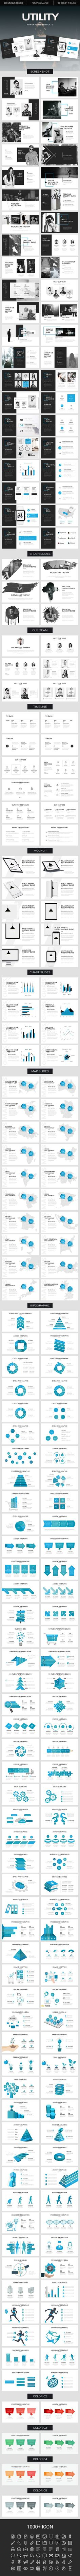 Fabulous Utility Powerpoint Template • Only available here ➝ http://graphicriver.net/item/utility-powerpoint-template/16288674?ref=pxcr